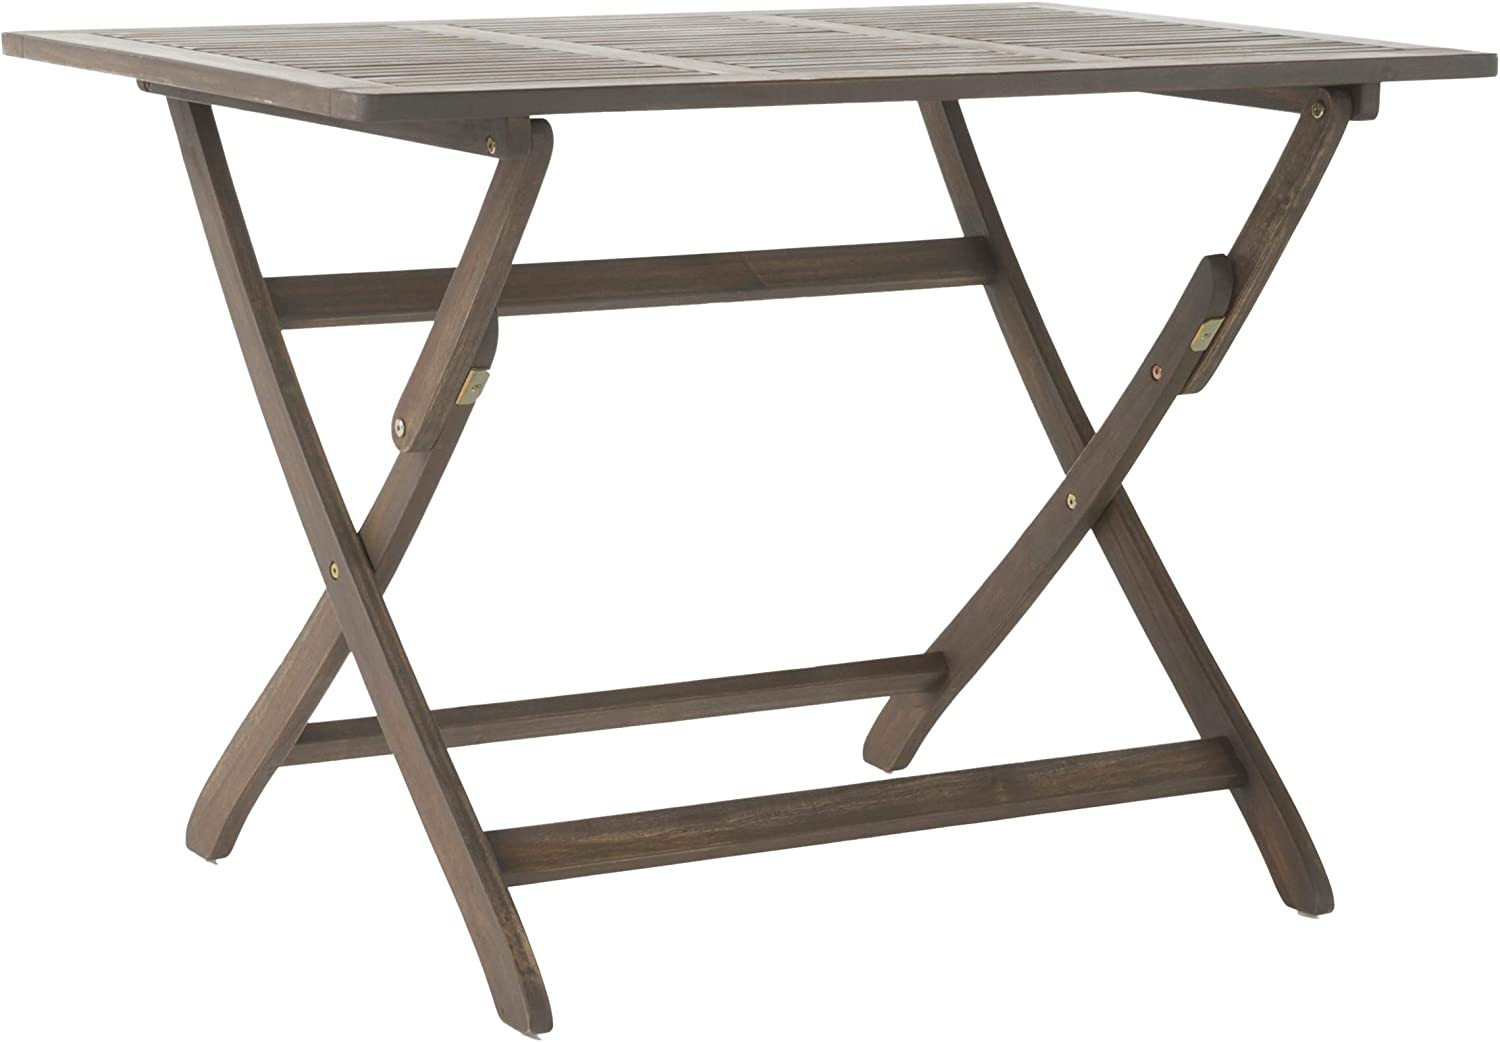 Christopher Knight Home Positano Branded goods Special Campaign Outdoor Foldable Di Acacia Wood